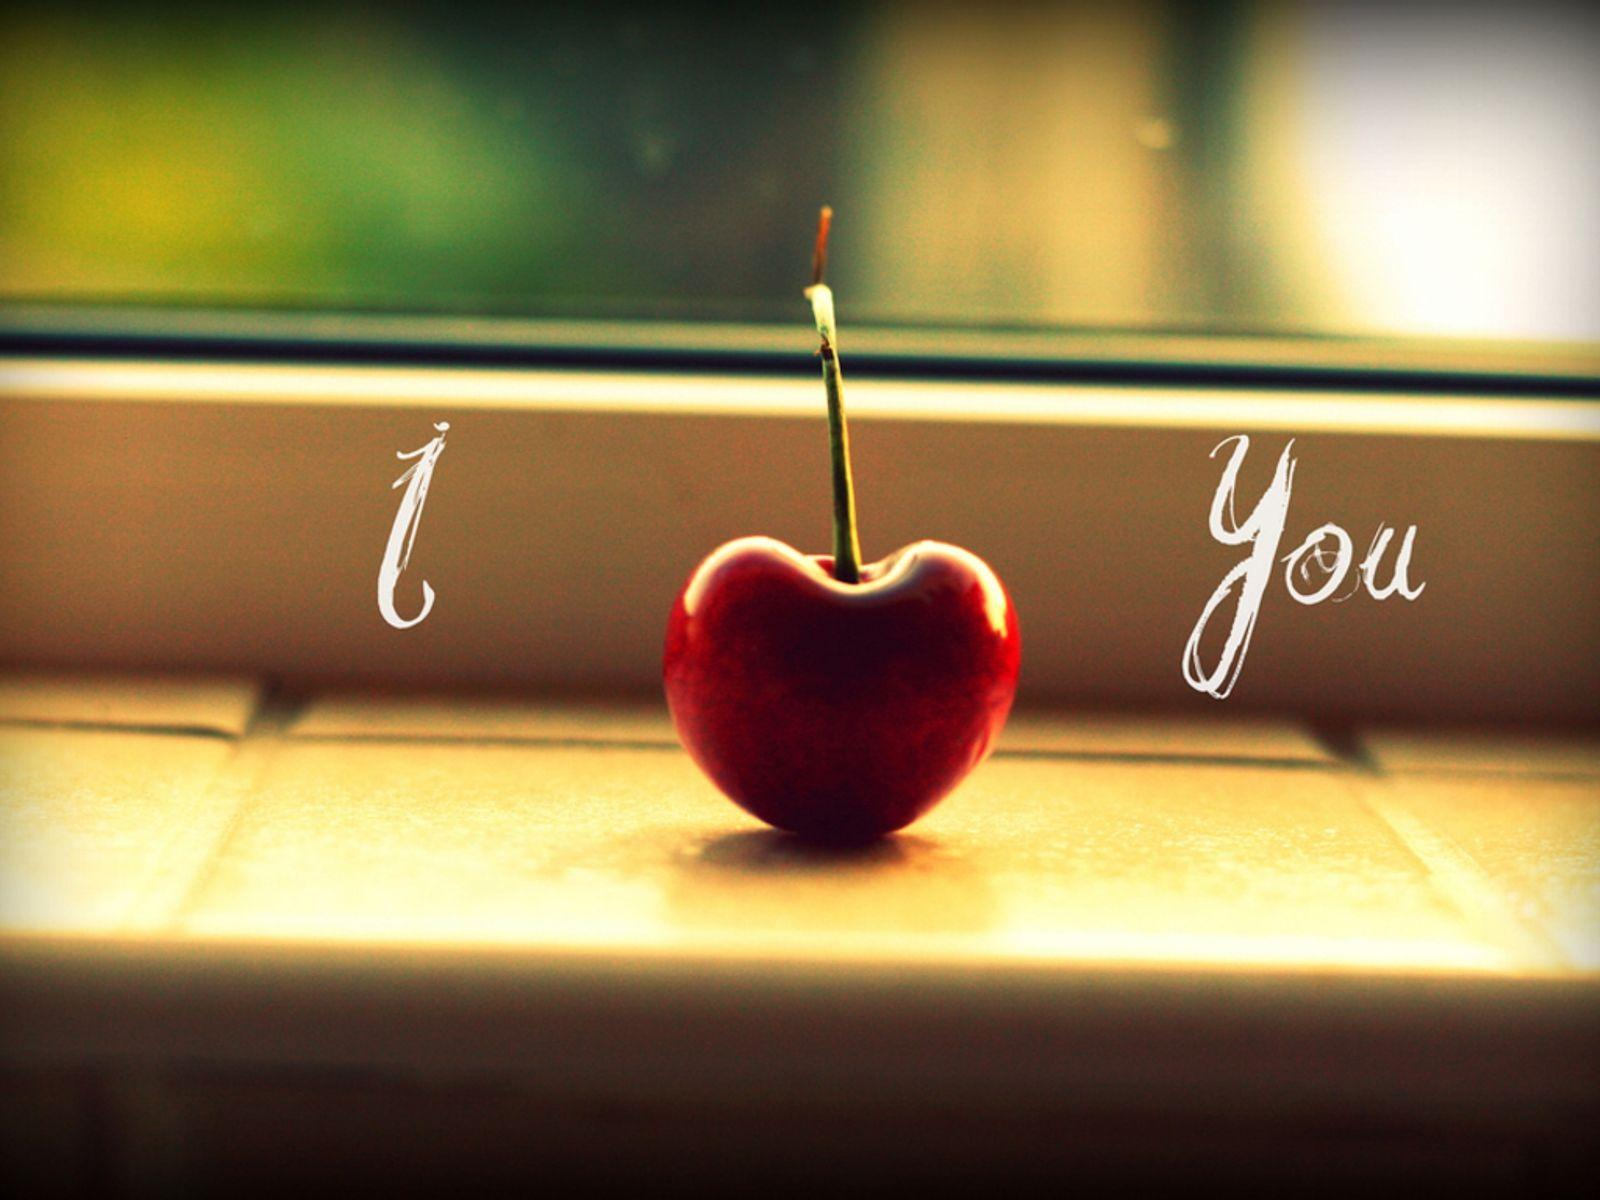 I Love You Images Hd HD Wallpapers Download 1920x1080